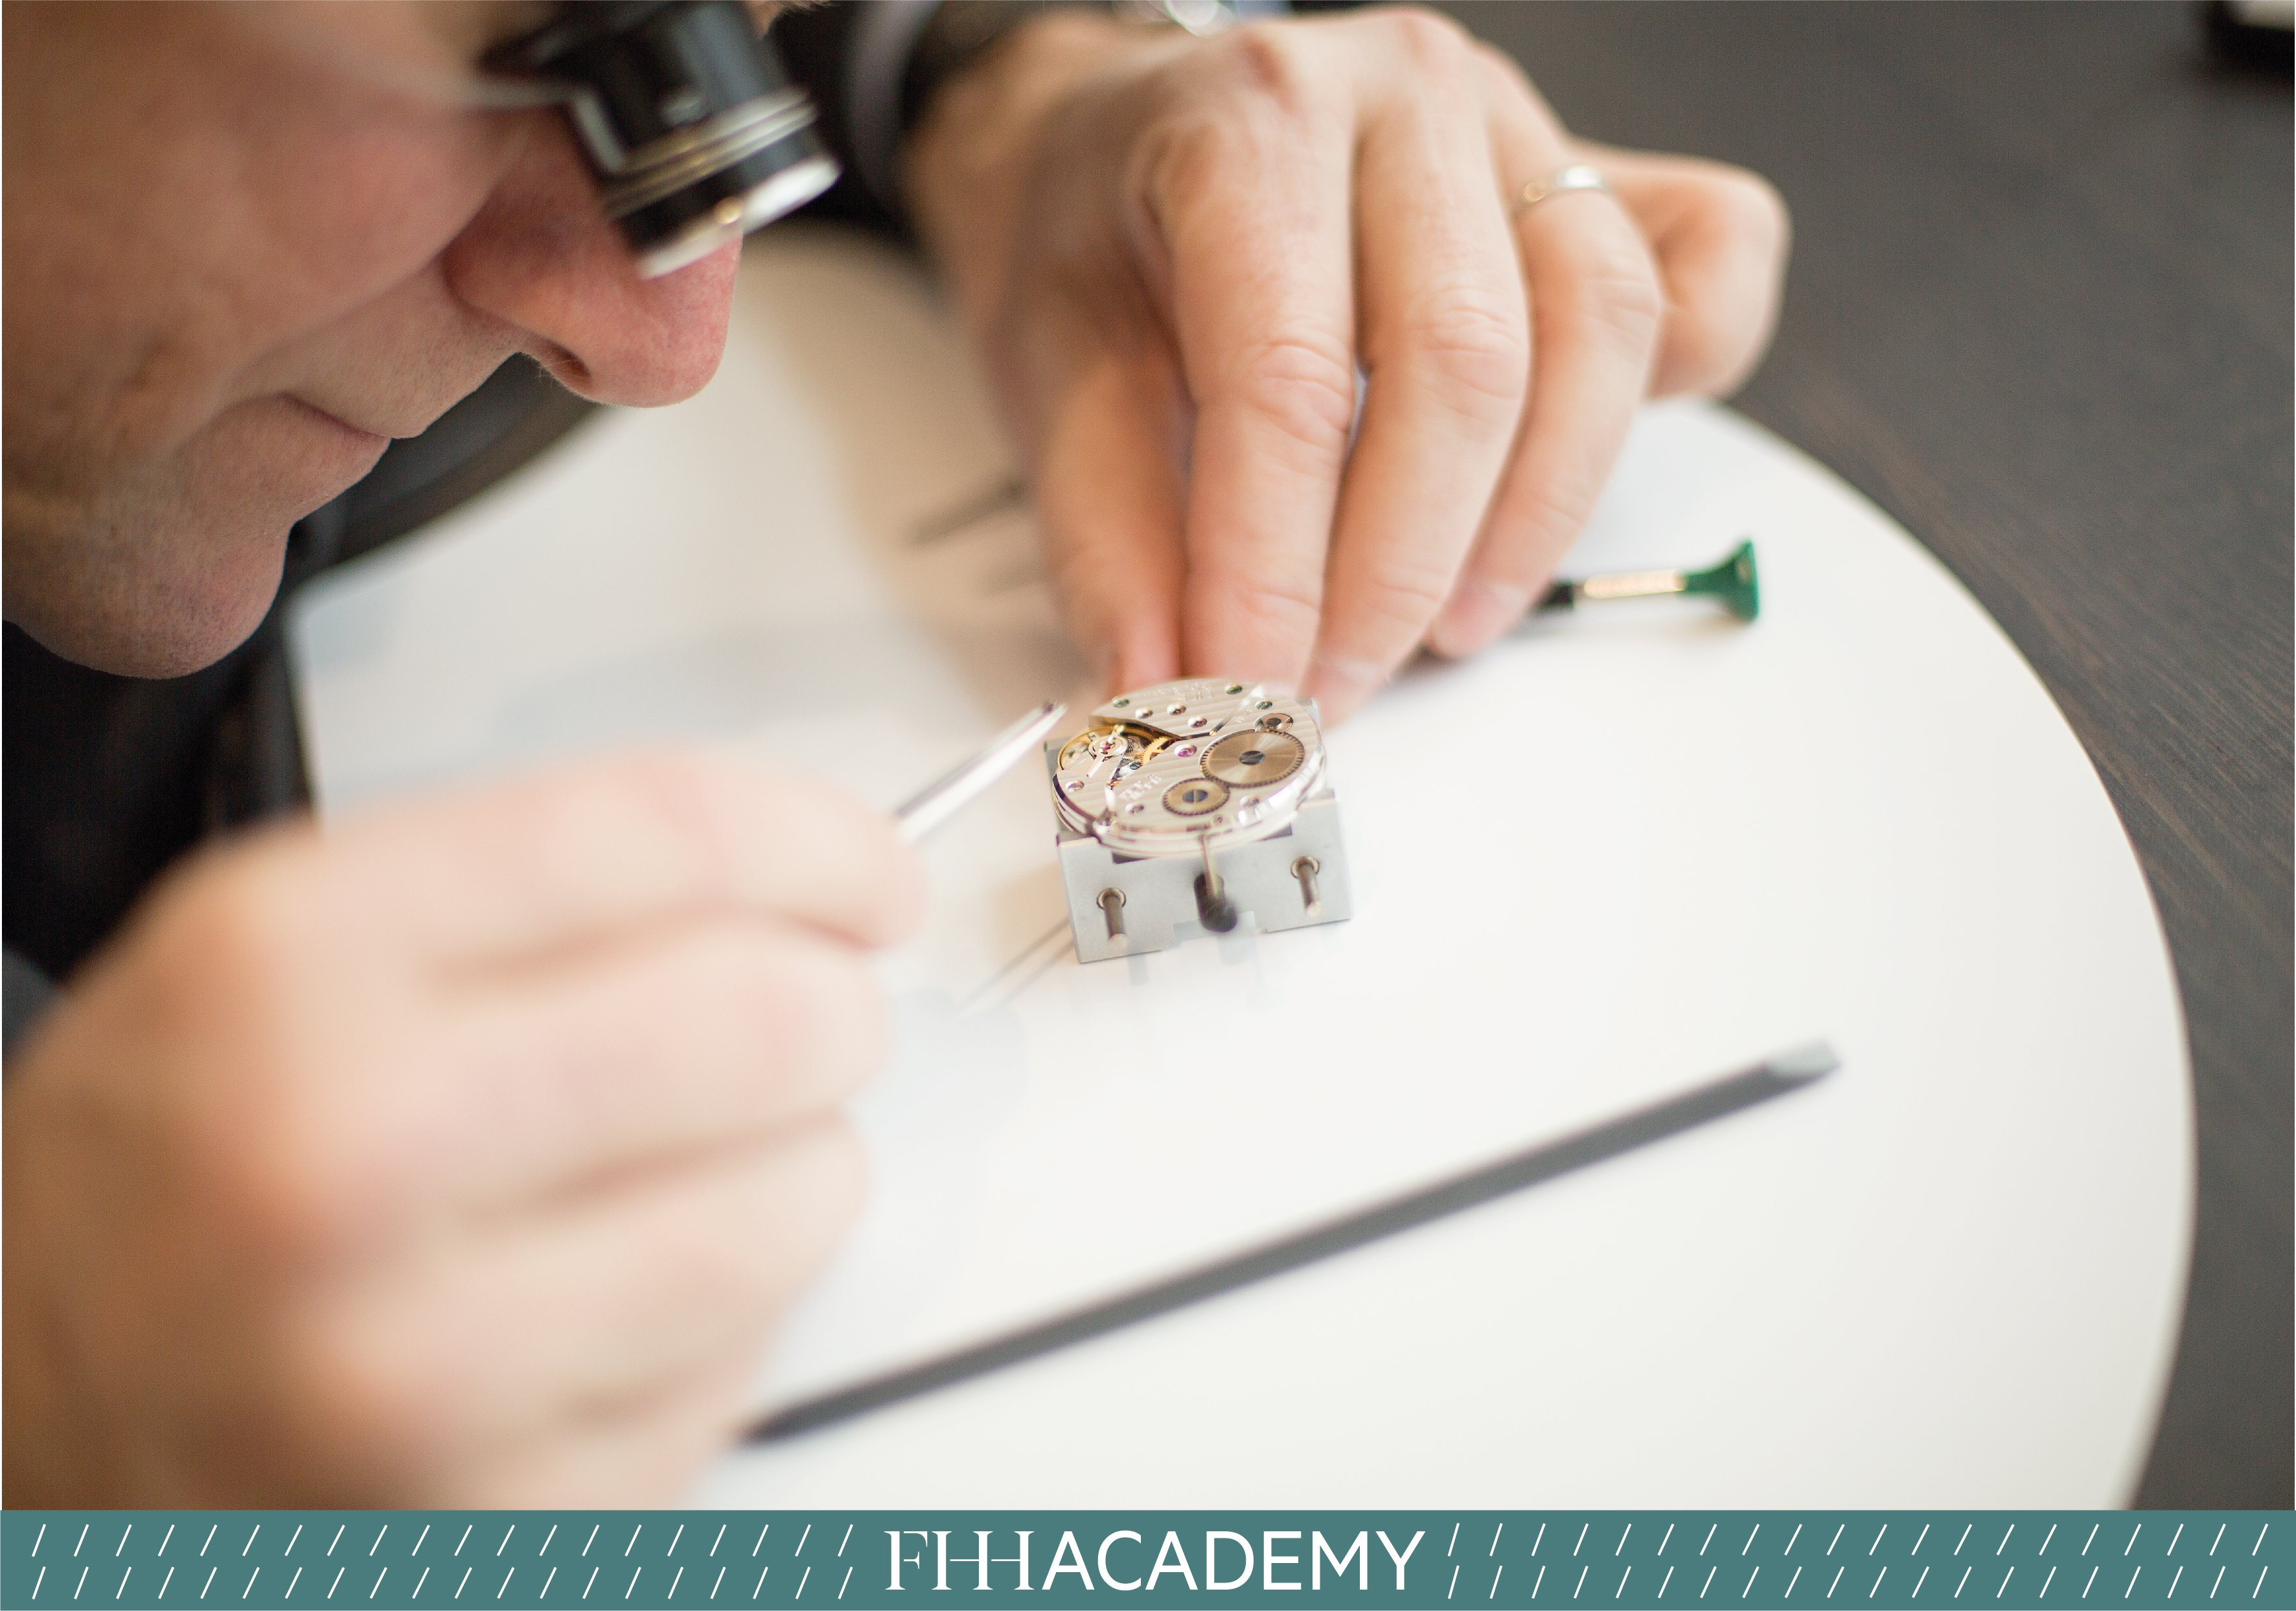 Future challenges of the fine watchmaking industry